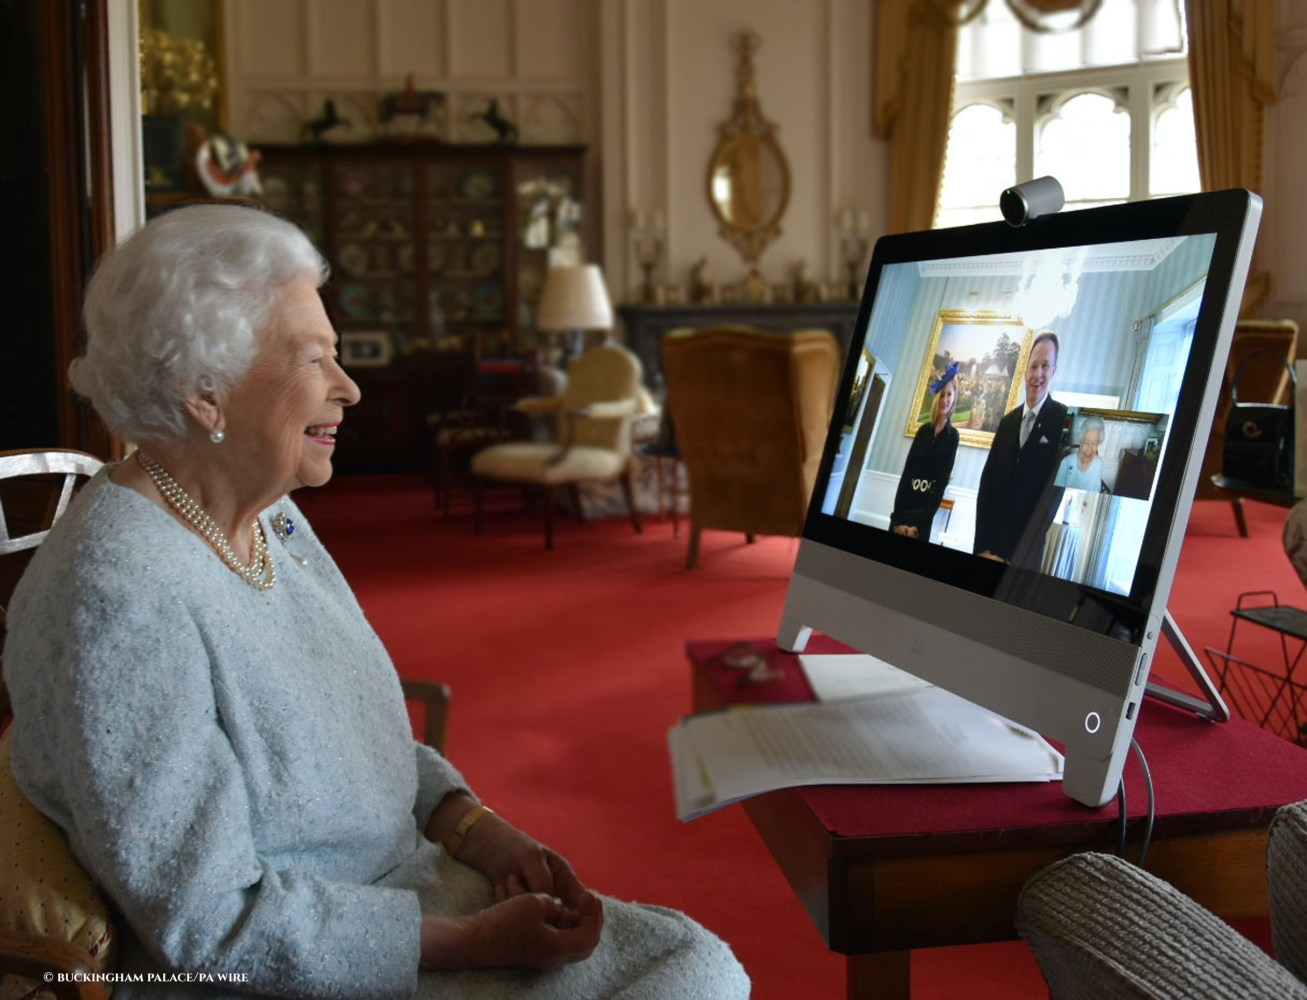 The Queen - in residence at Windsor Castle - speaking by video link during a virtual diplomatic audience with His Excellency Dr. Ferenc Kumin, Ambassador of Hungary